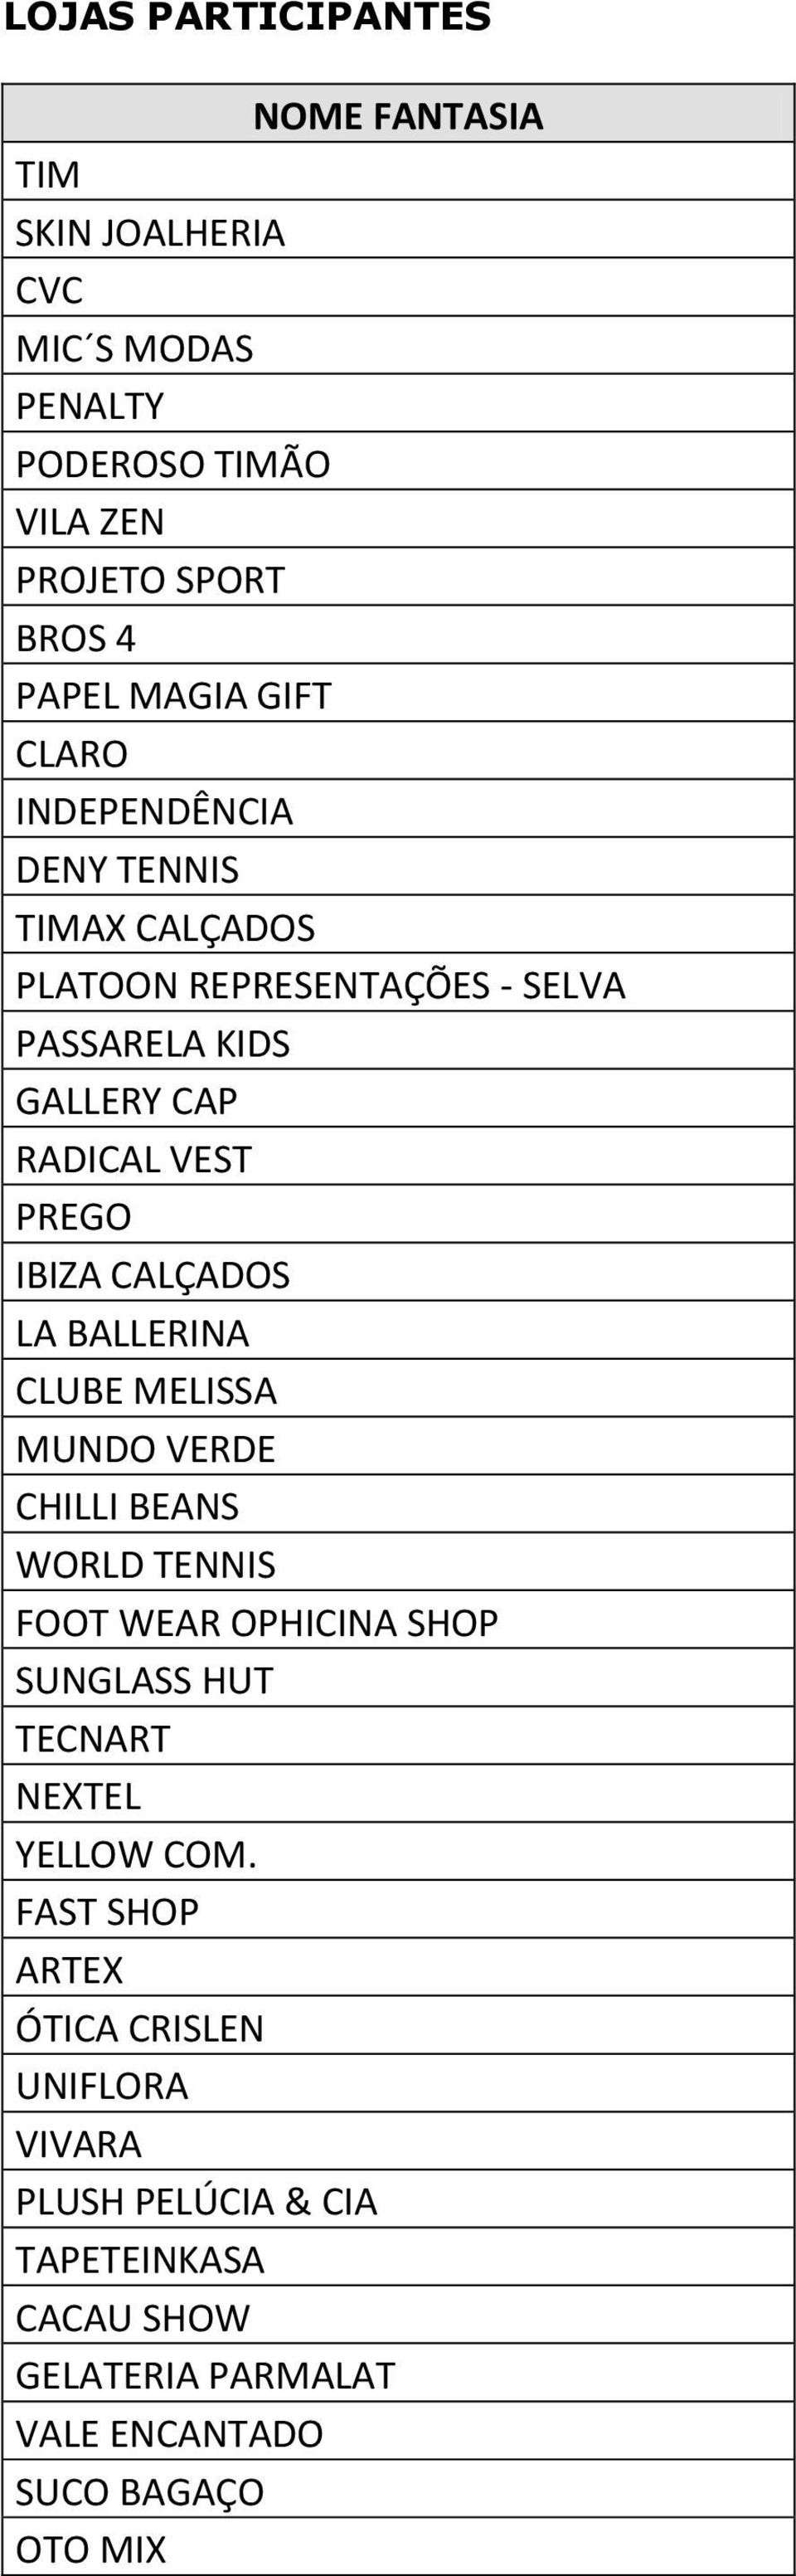 CALÇADOS LA BALLERINA CLUBE MELISSA MUNDO VERDE CHILLI BEANS WORLD TENNIS FOOT WEAR OPHICINA SHOP SUNGLASS HUT TECNART NEXTEL YELLOW COM.